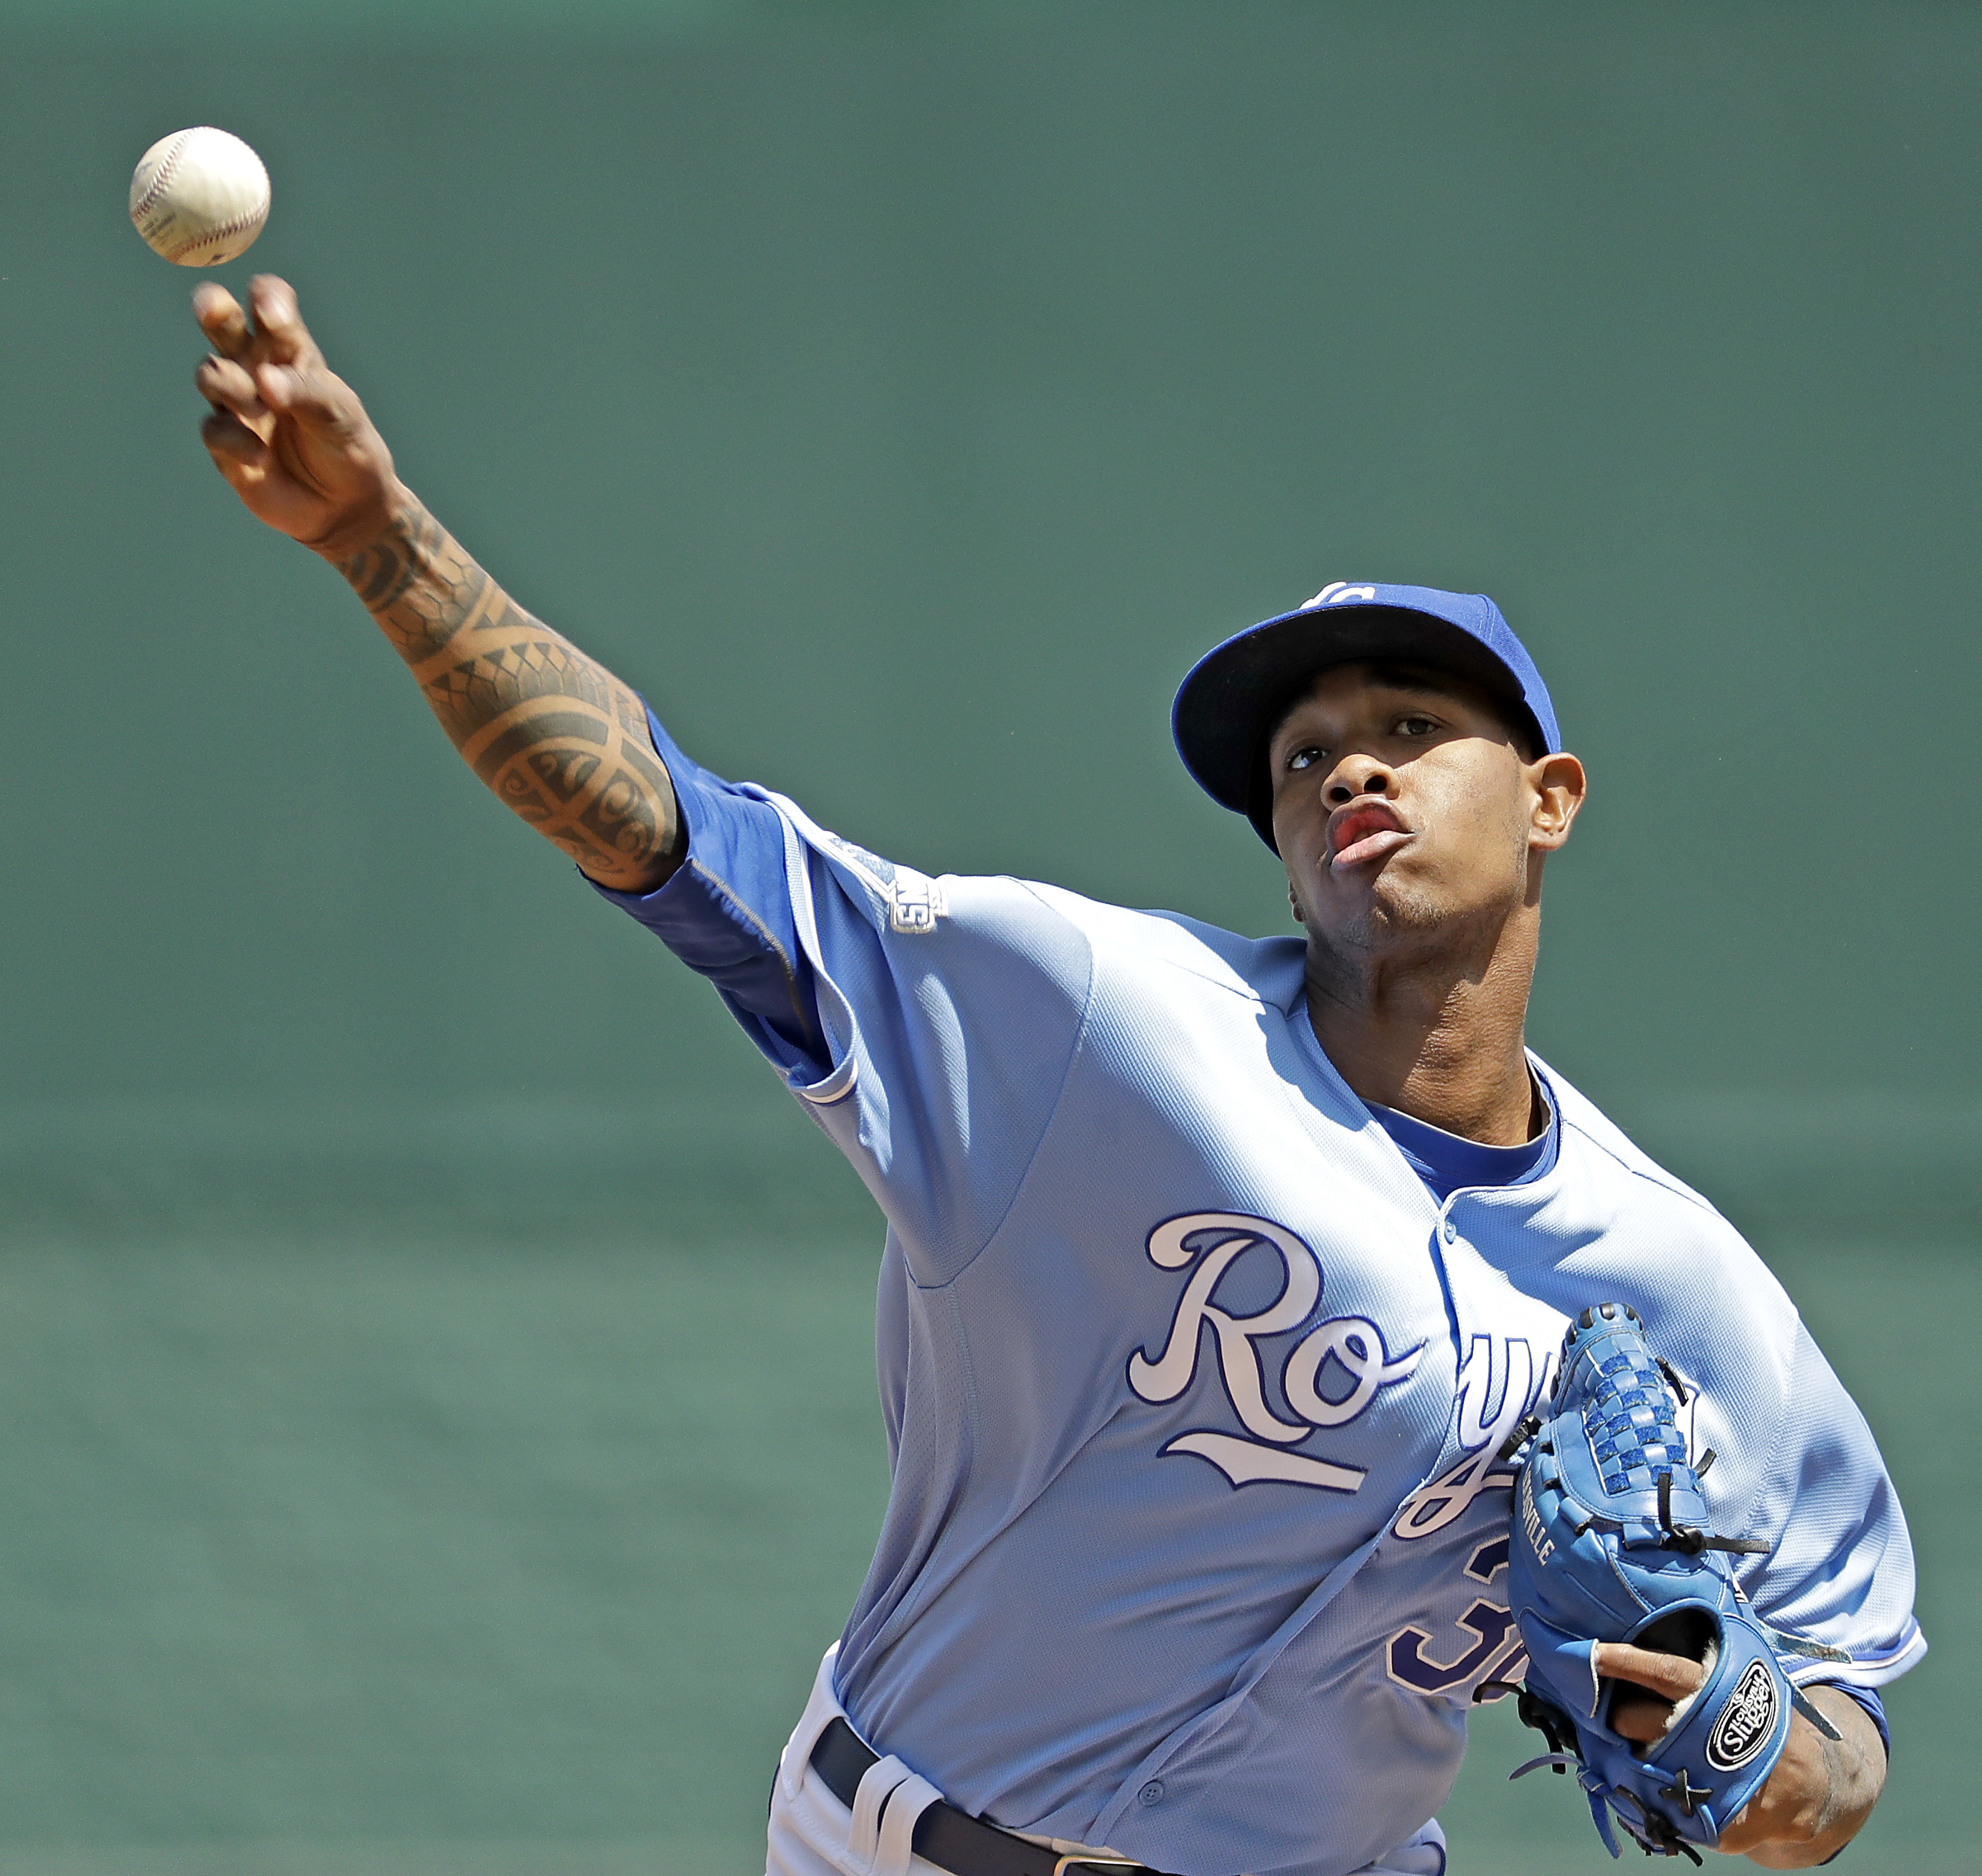 Kansas City Royals starting pitcher Yordano Ventura throws during the first inning of a baseball game against the Baltimore Orioles, Sunday, April 24, 2016, in Kansas City, Mo. (AP Photo/Charlie Riedel)